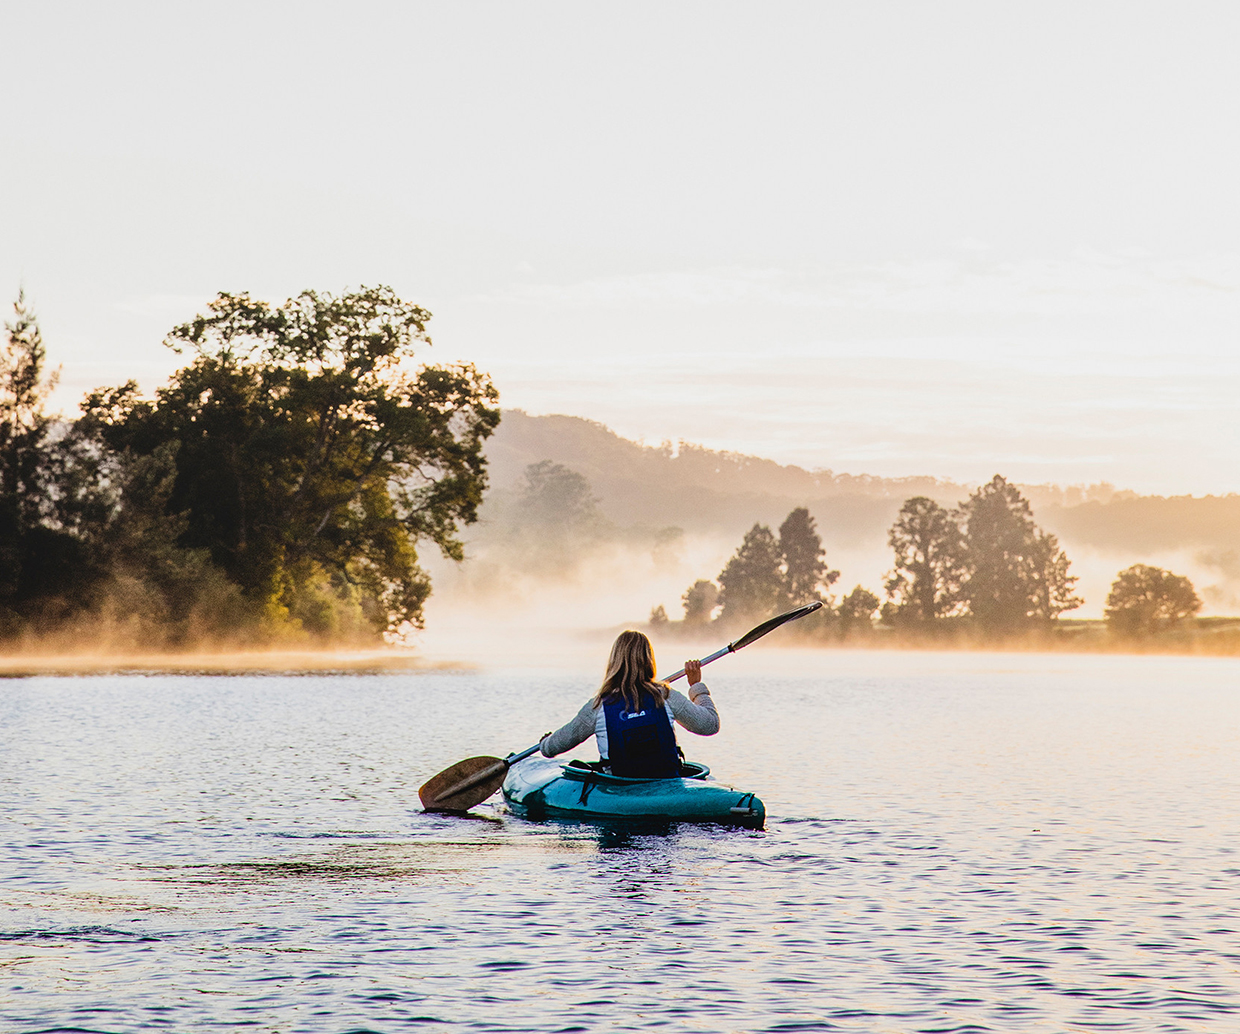 woman in kayak on misty river